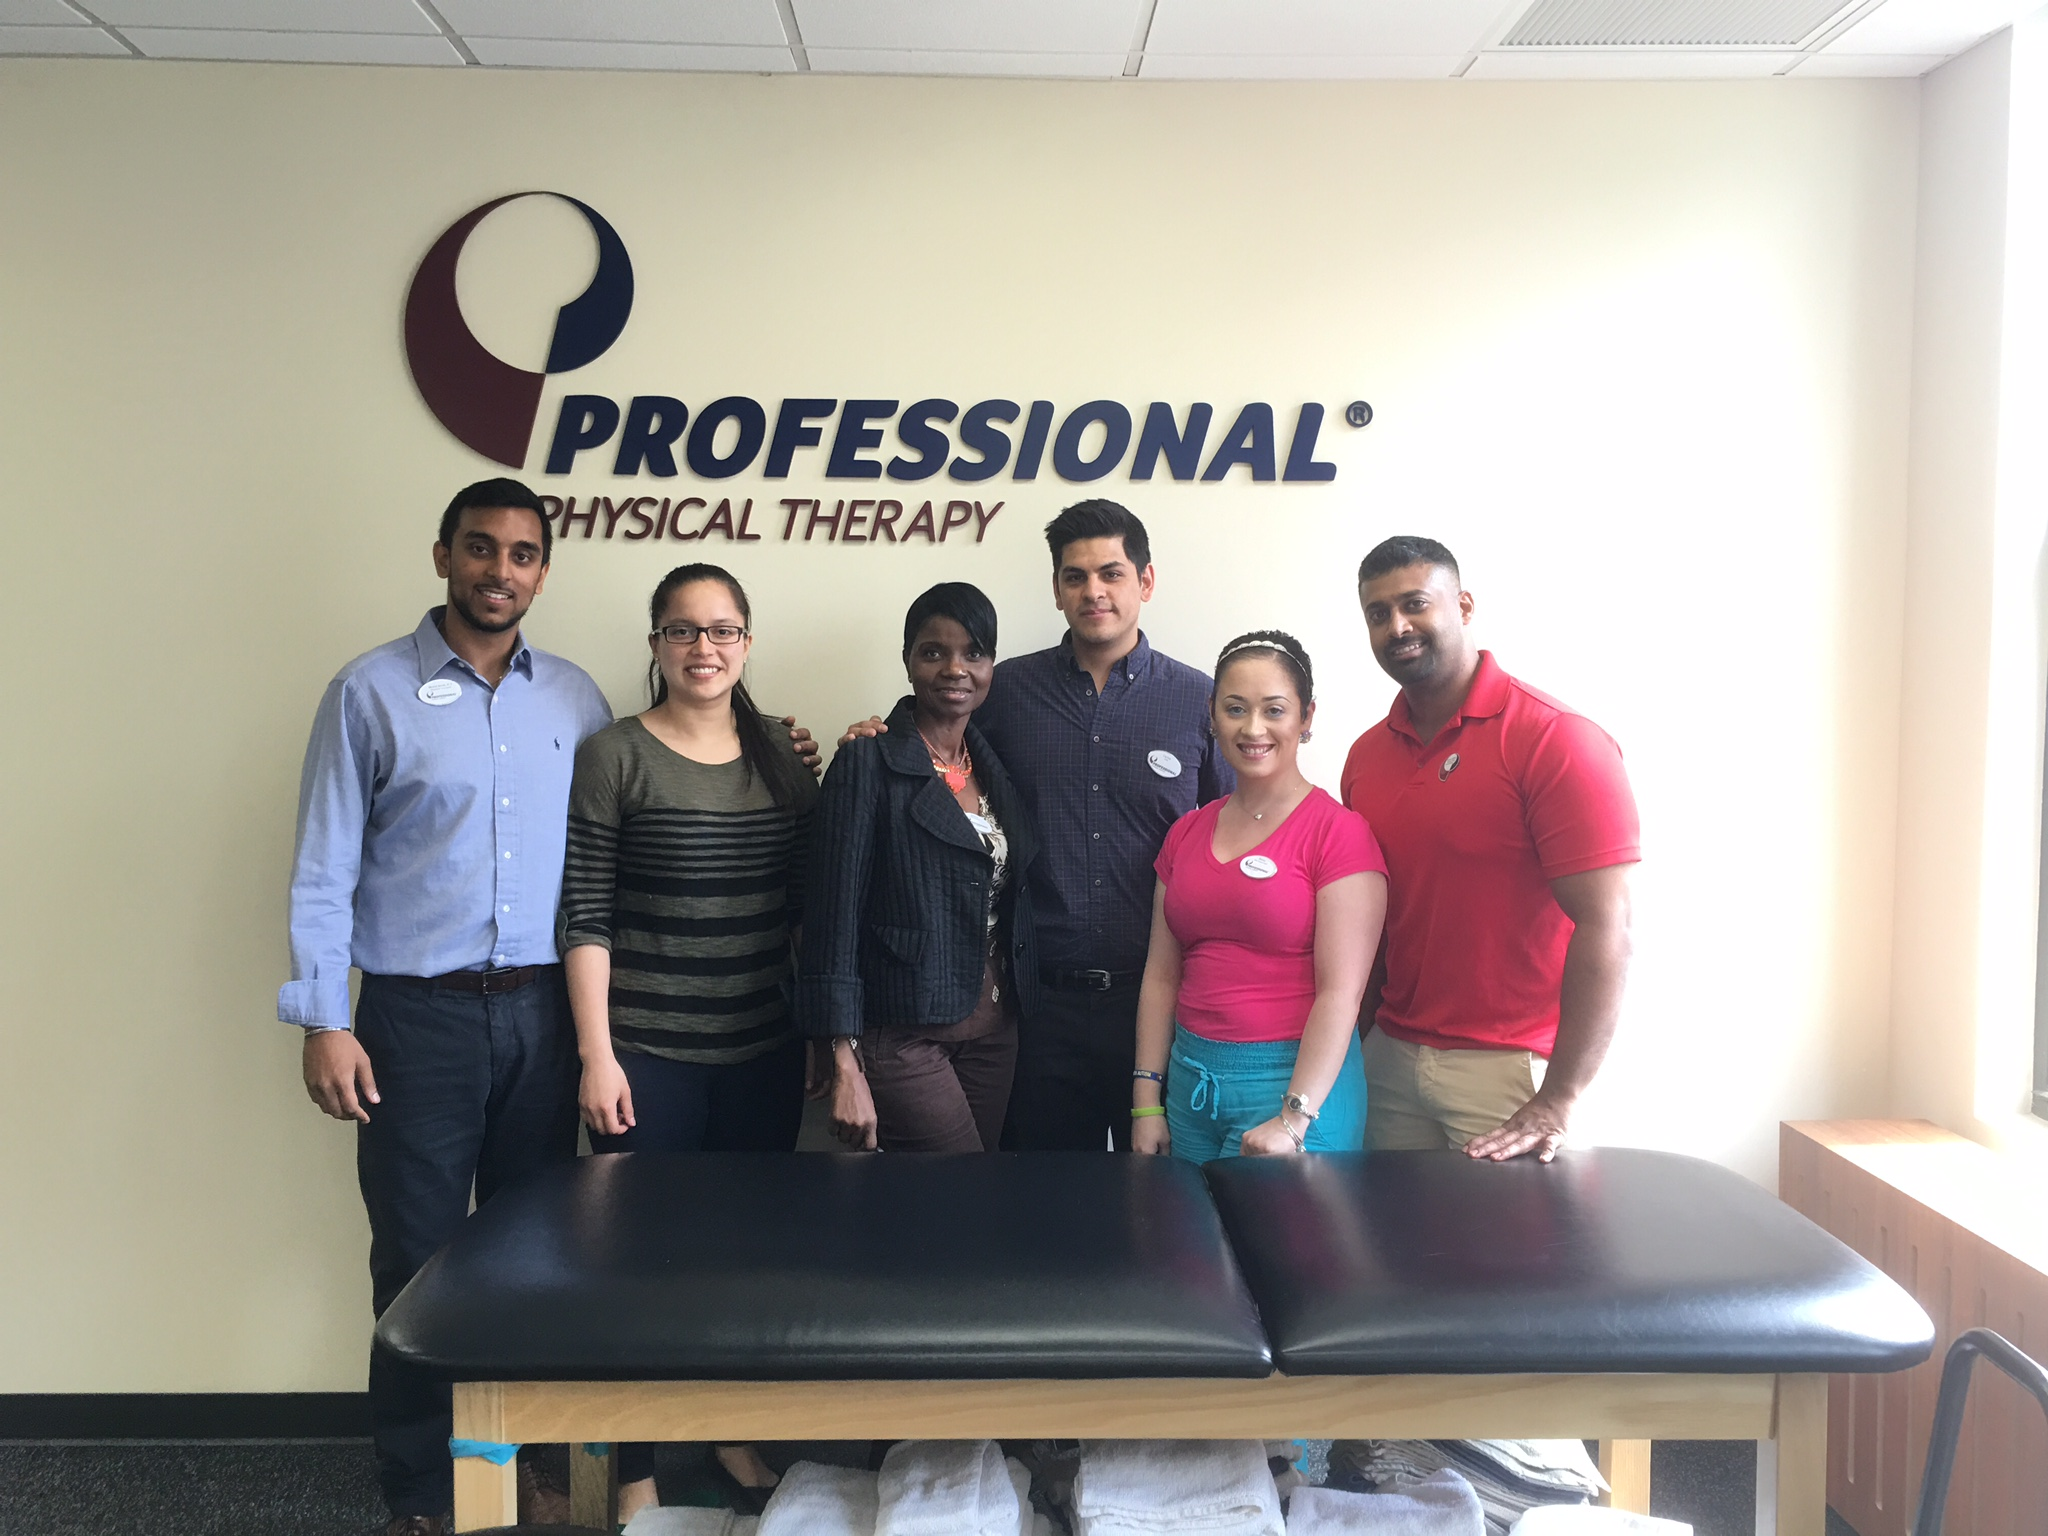 Professional Physical Therapy Furthers Expansion And